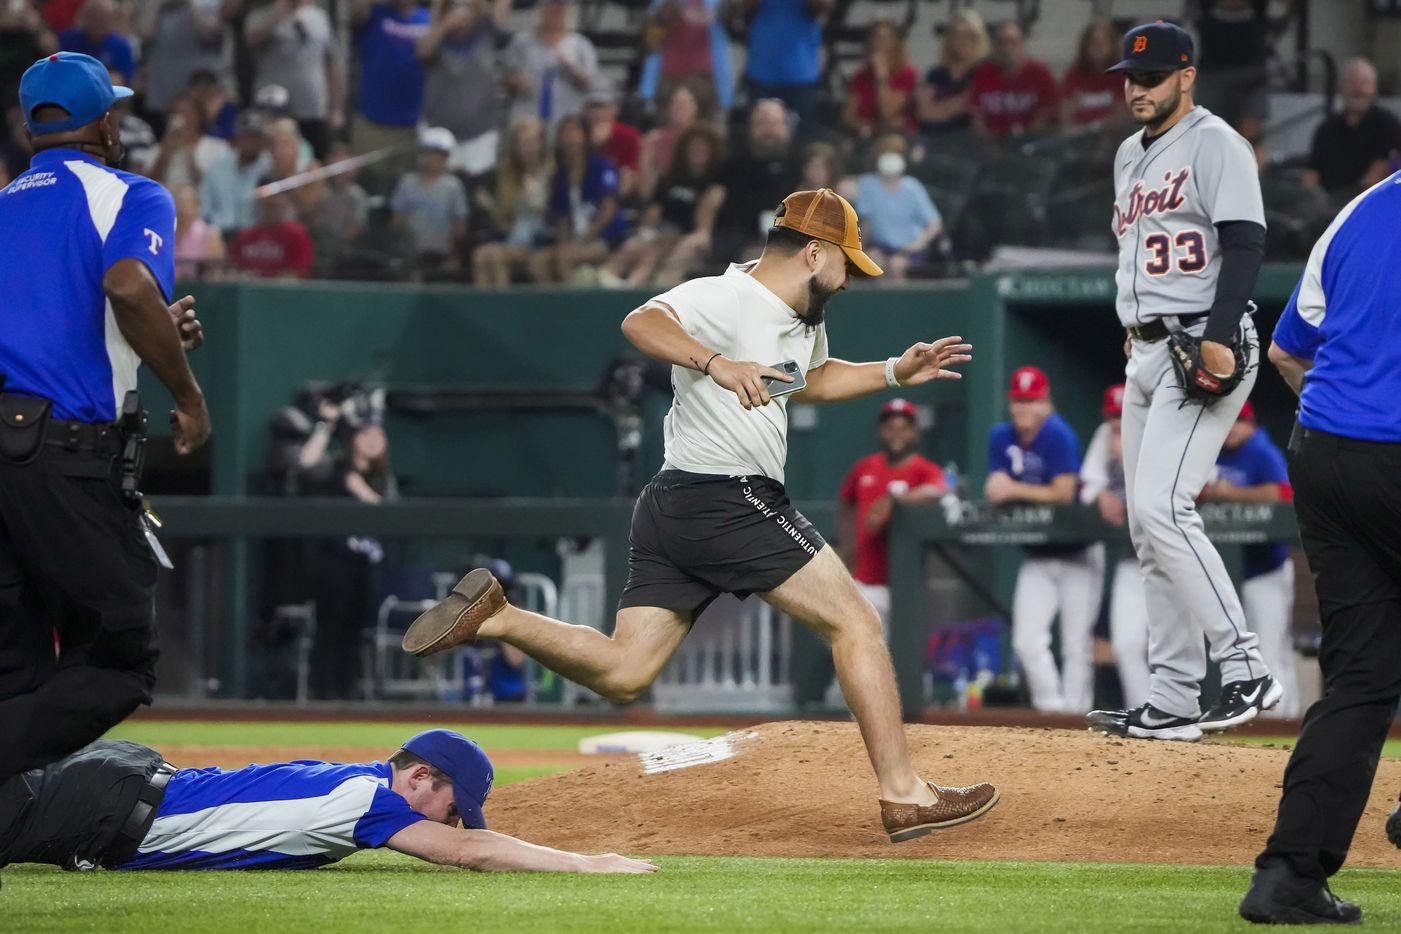 Security guards give chase to a fan who ran out on the field as Detroit Tigers relief pitcher Bryan Garcia (33) looks on during the eighth inning against the Texas Rangers at Globe Life Field on Tuesday, July 6, 2021.